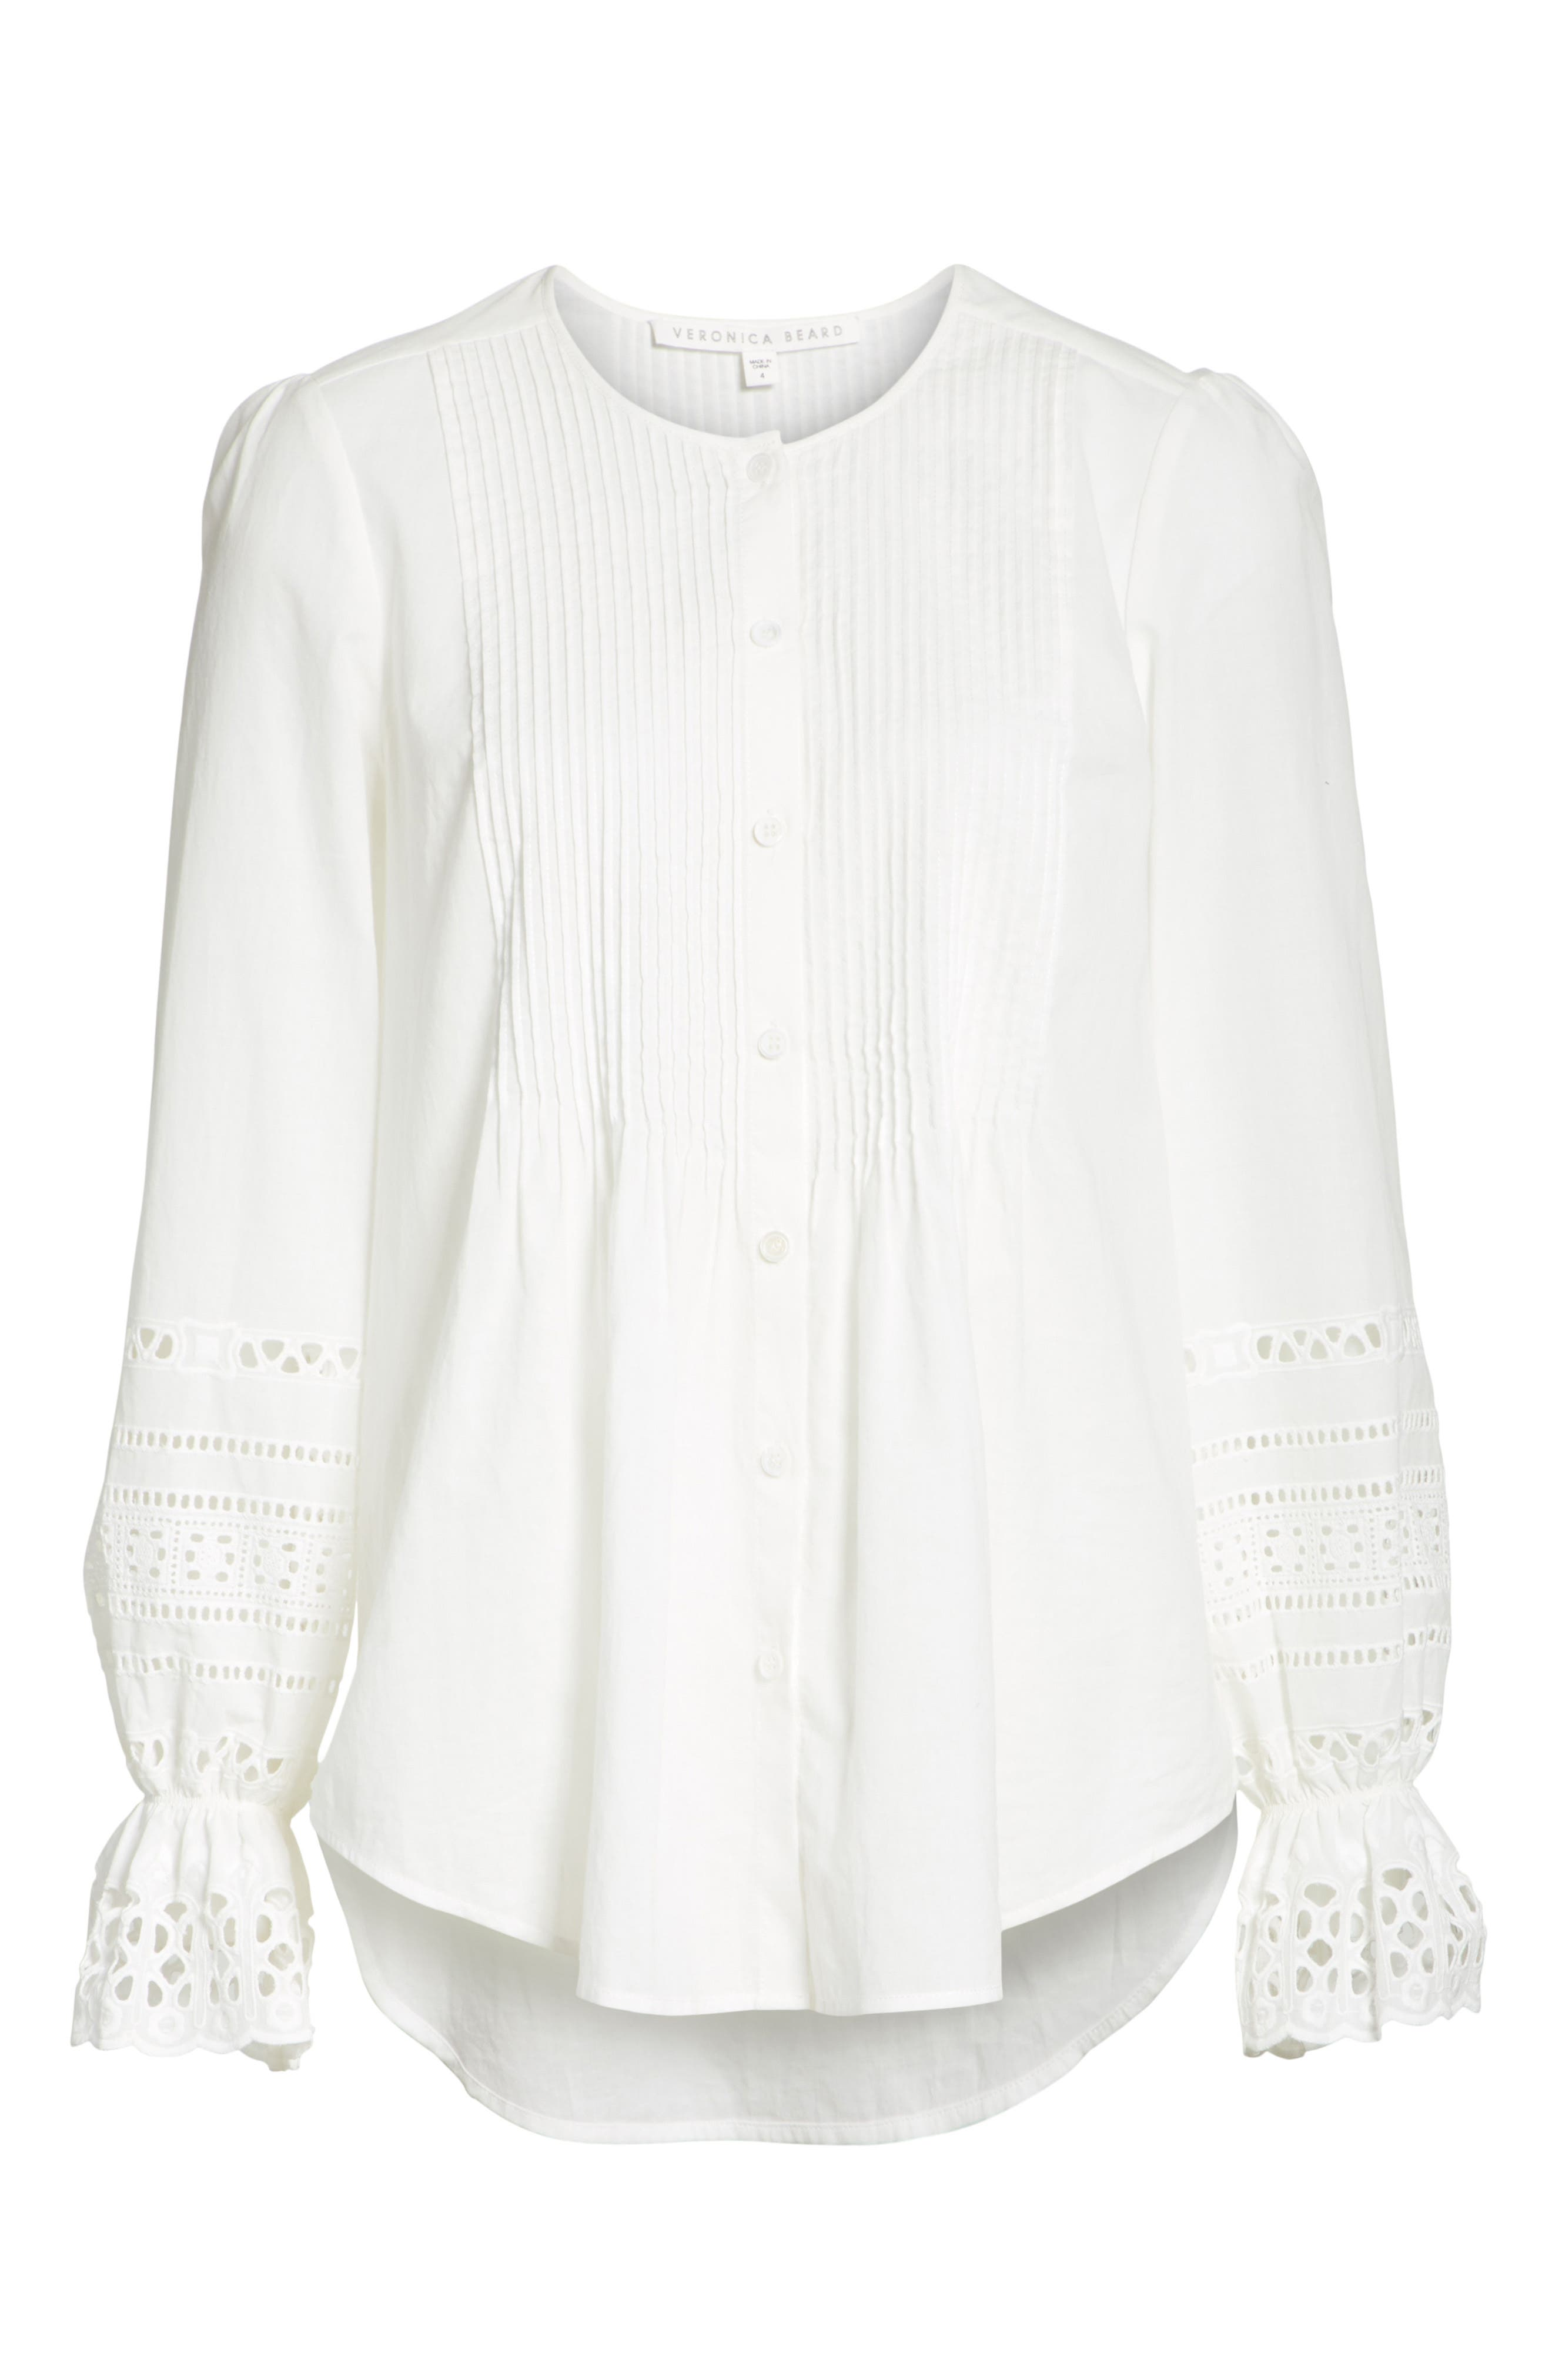 Mili Eyelet Sleeve Top,                             Alternate thumbnail 6, color,                             White